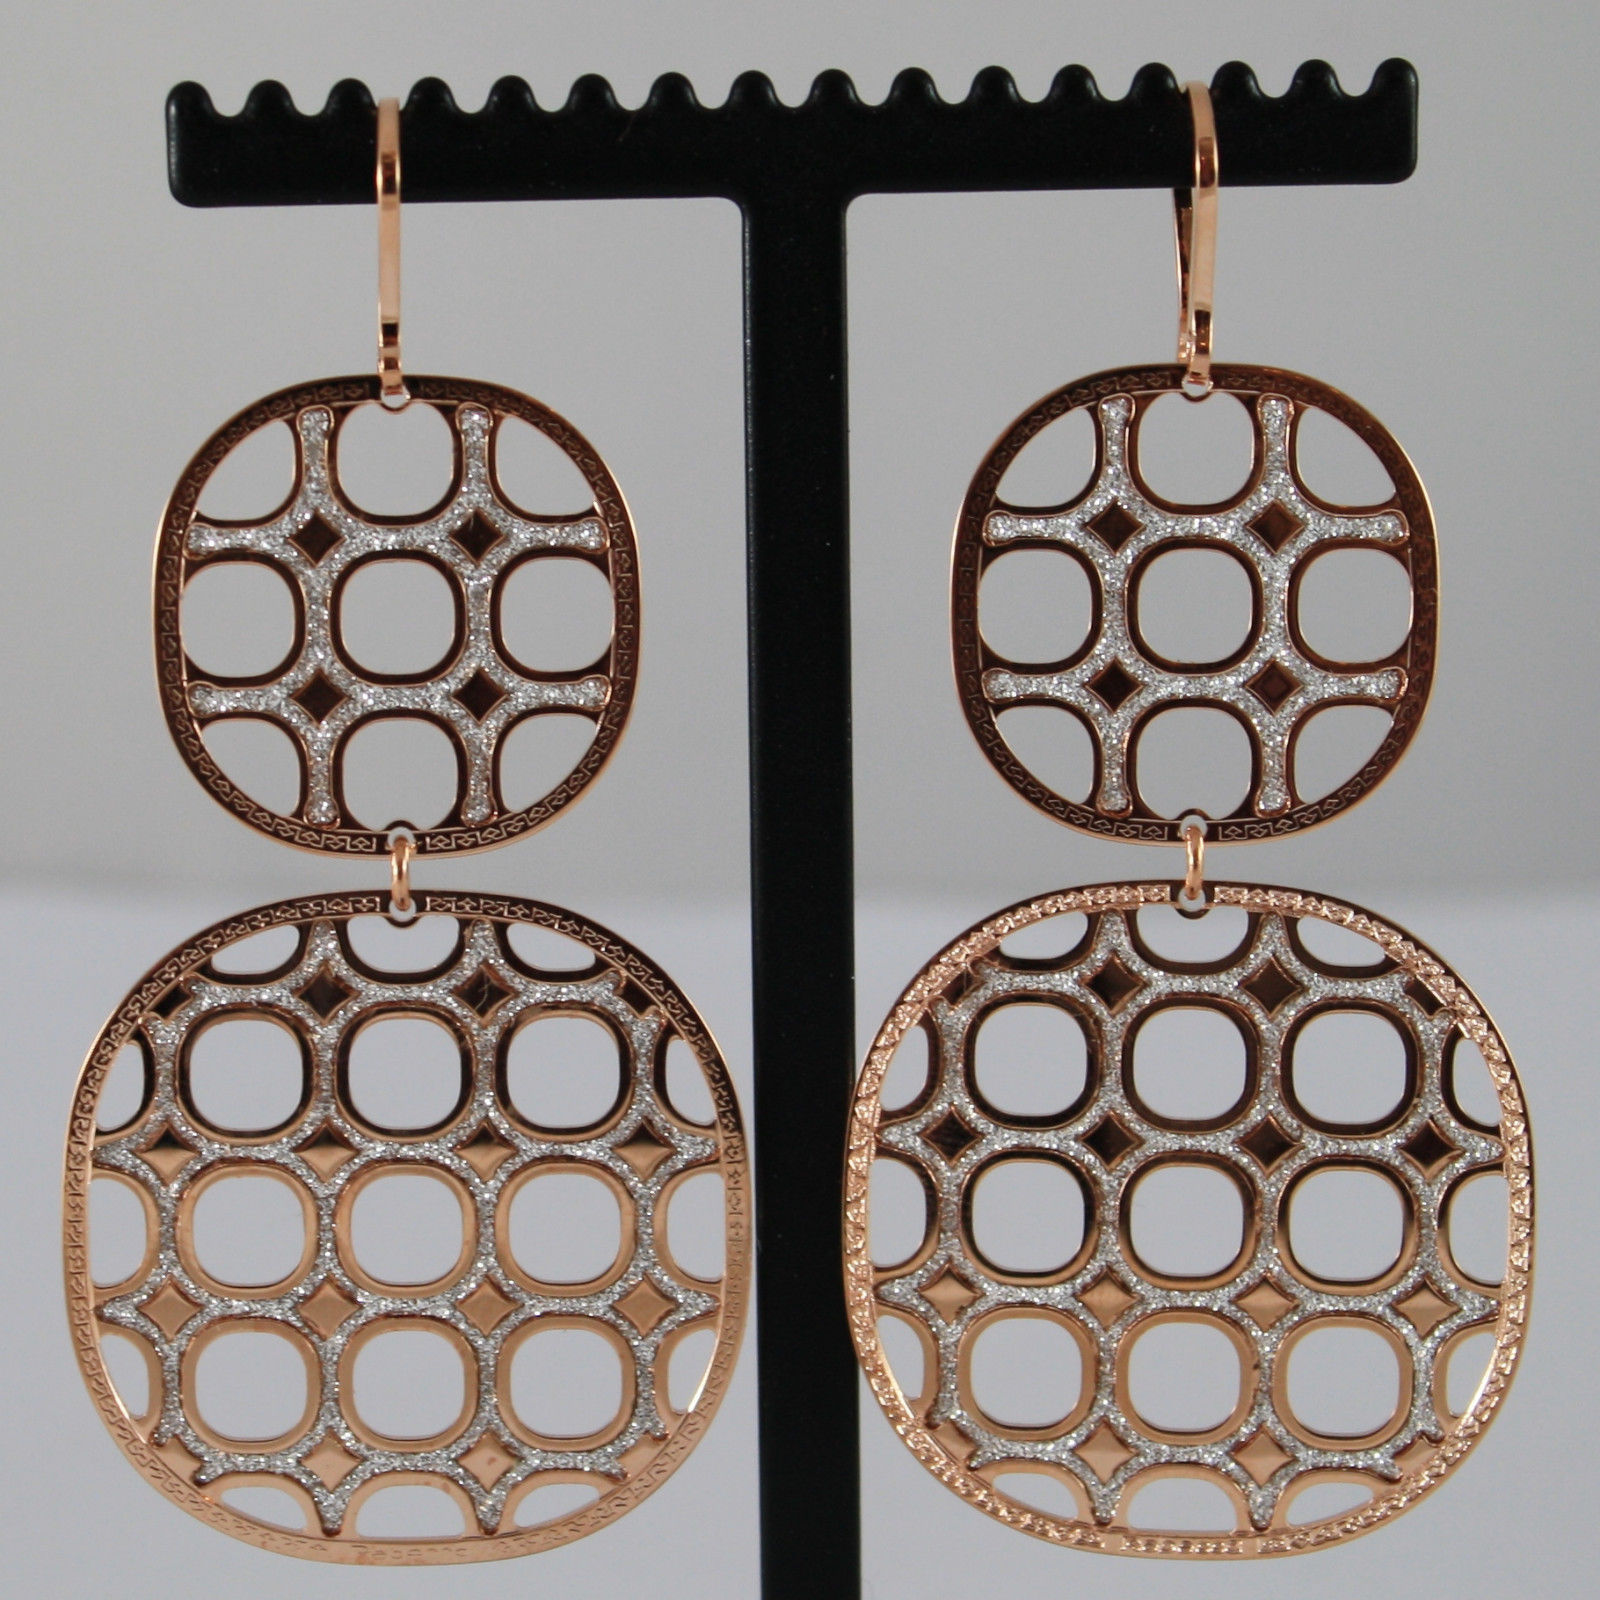 ROSE GOLD PLATED BRONZE REBECCA EARRINGS WITH SQUARES B700RB13 LENGTH 2,9 INCHES